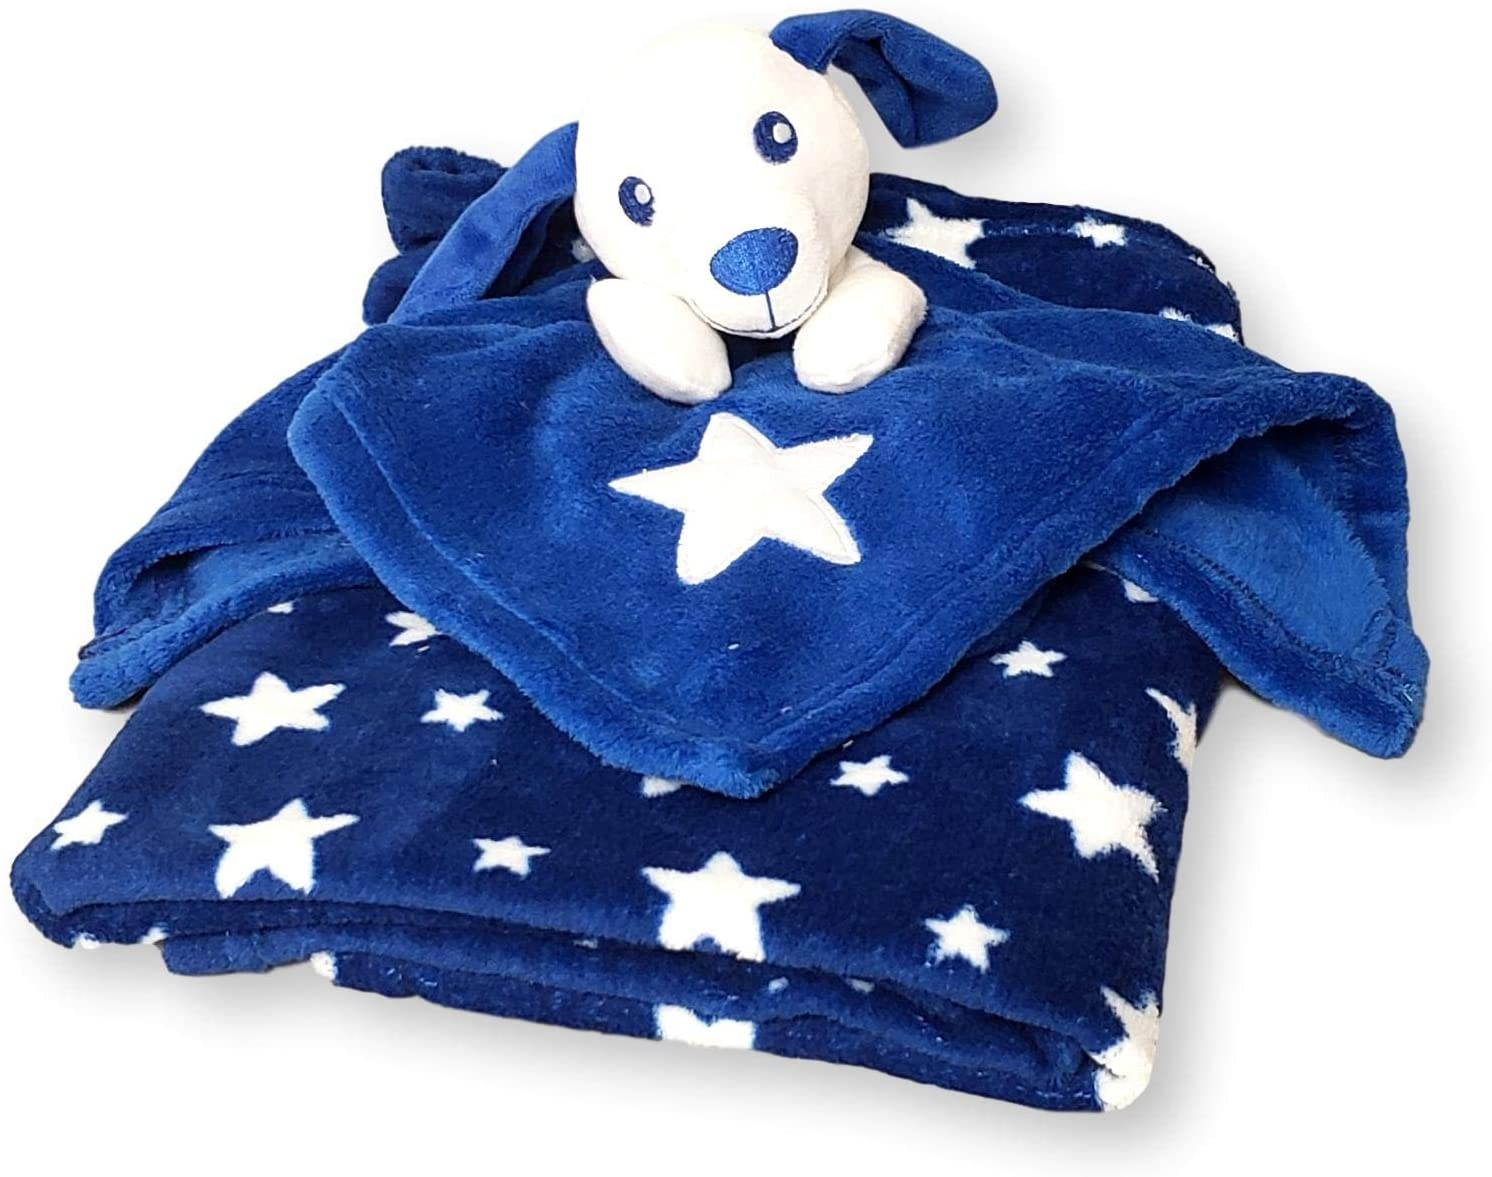 SONA G DESIGNS Plush Animal Security Lovey with Blanket Gift Set for Newborn Infant - Custom Personalized Available (Blue & White Puppy Dog)